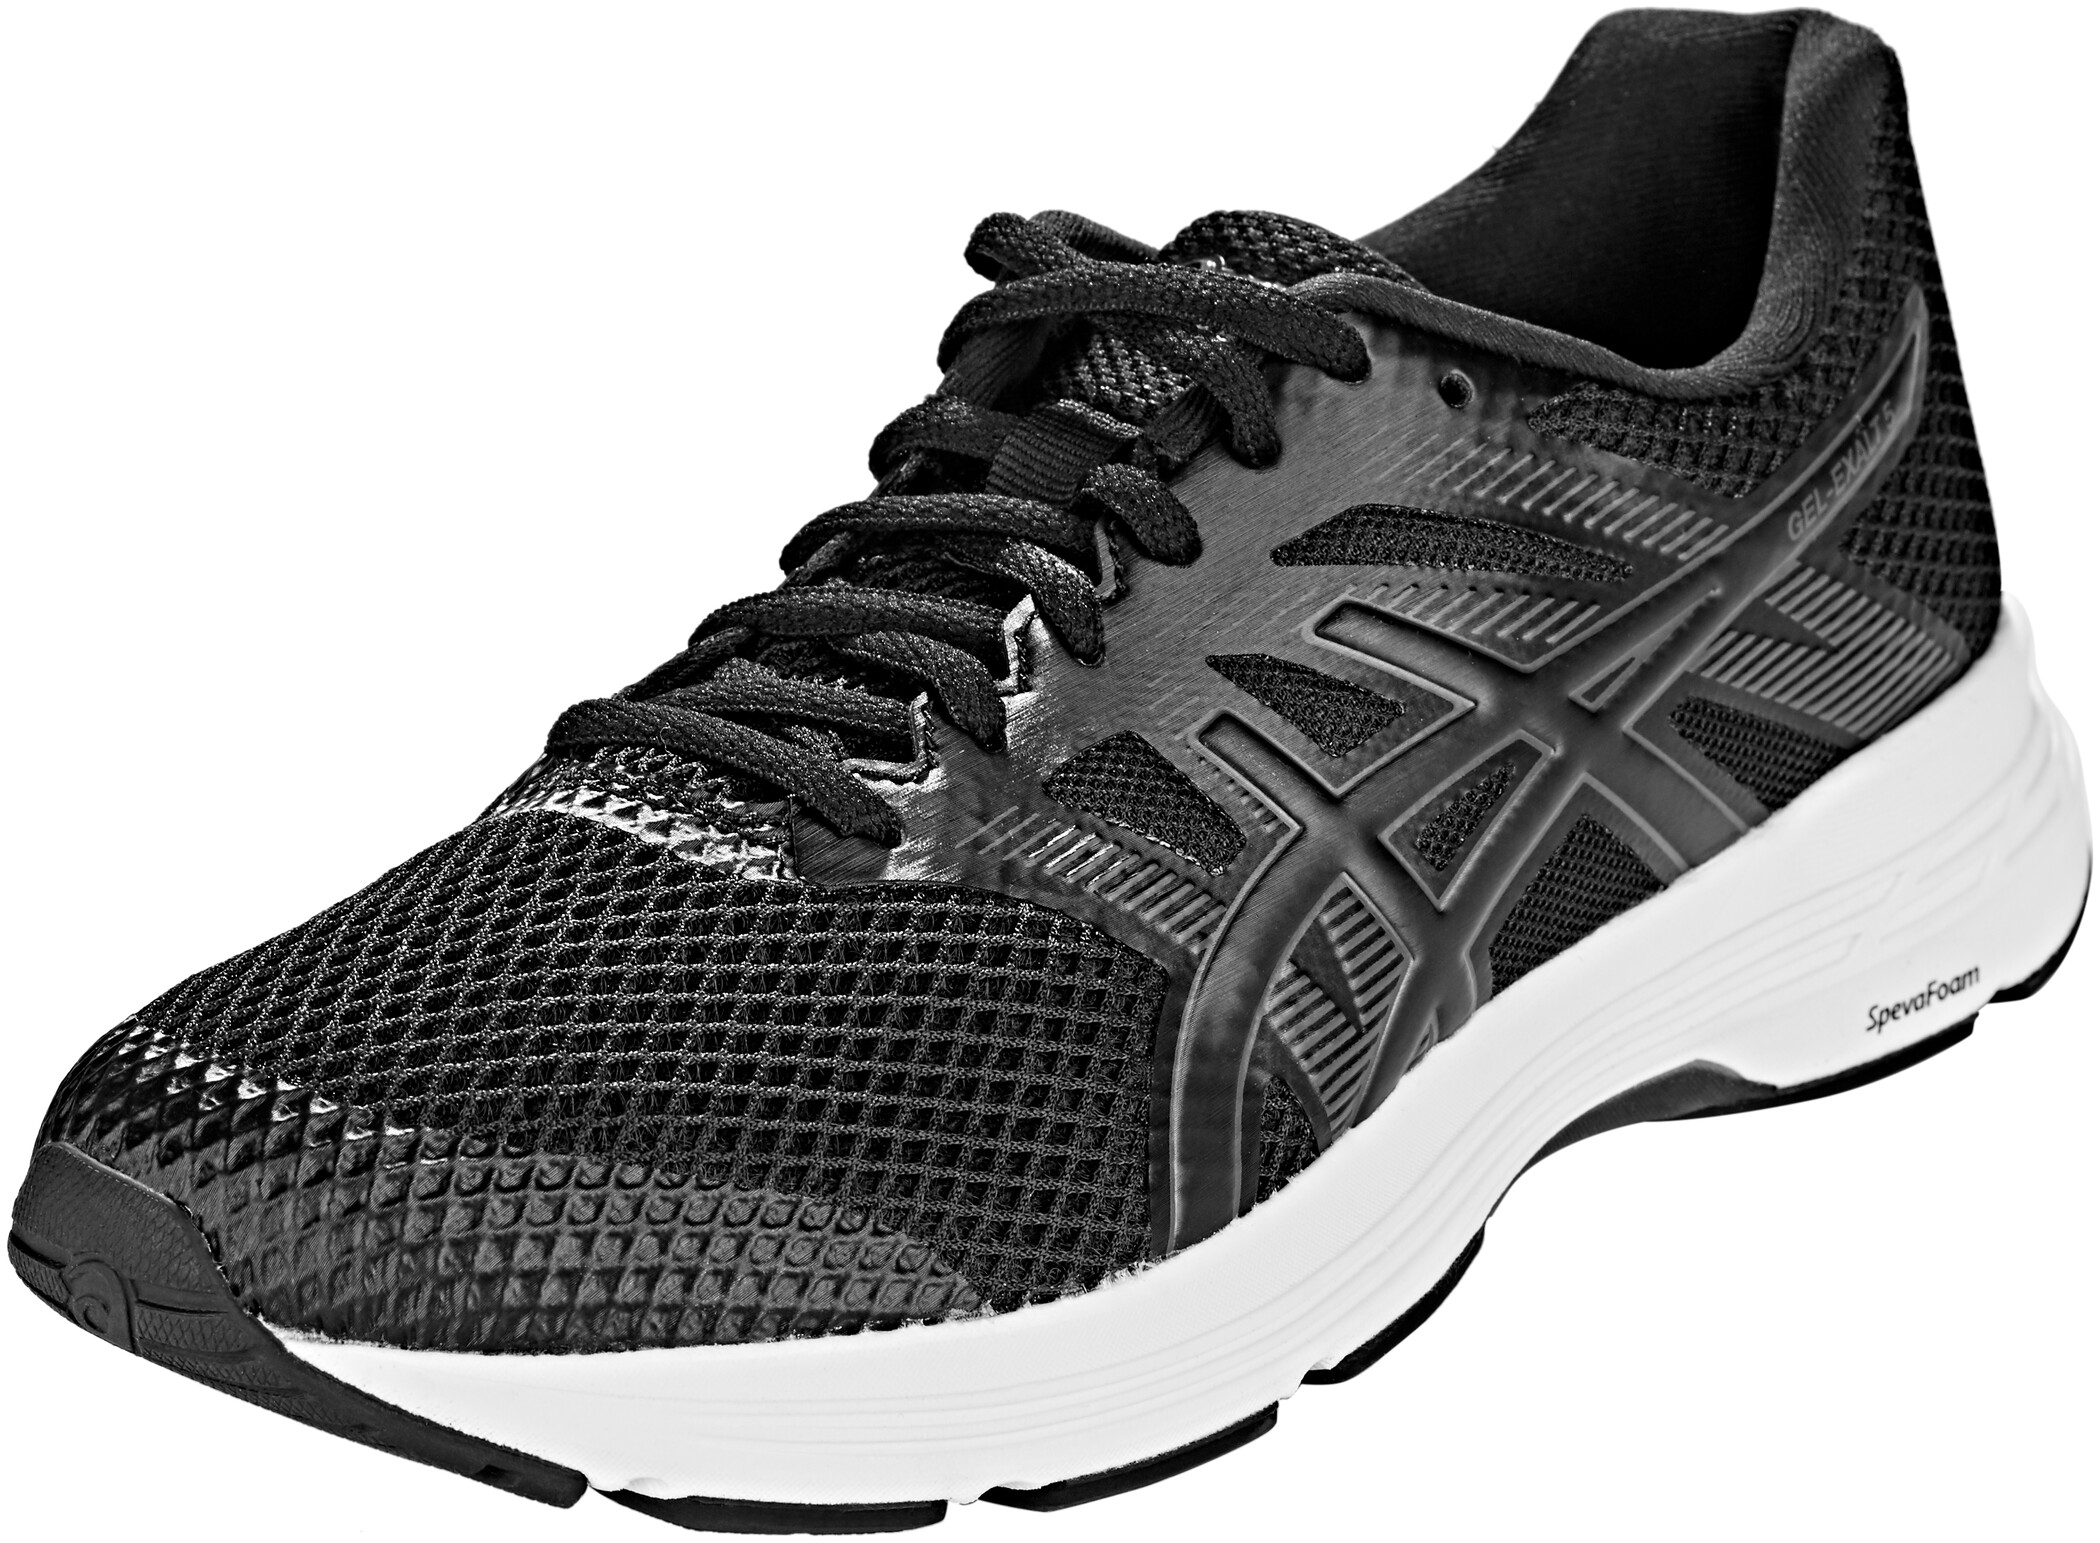 Asics Gel-Exalt 5 | Running shoes